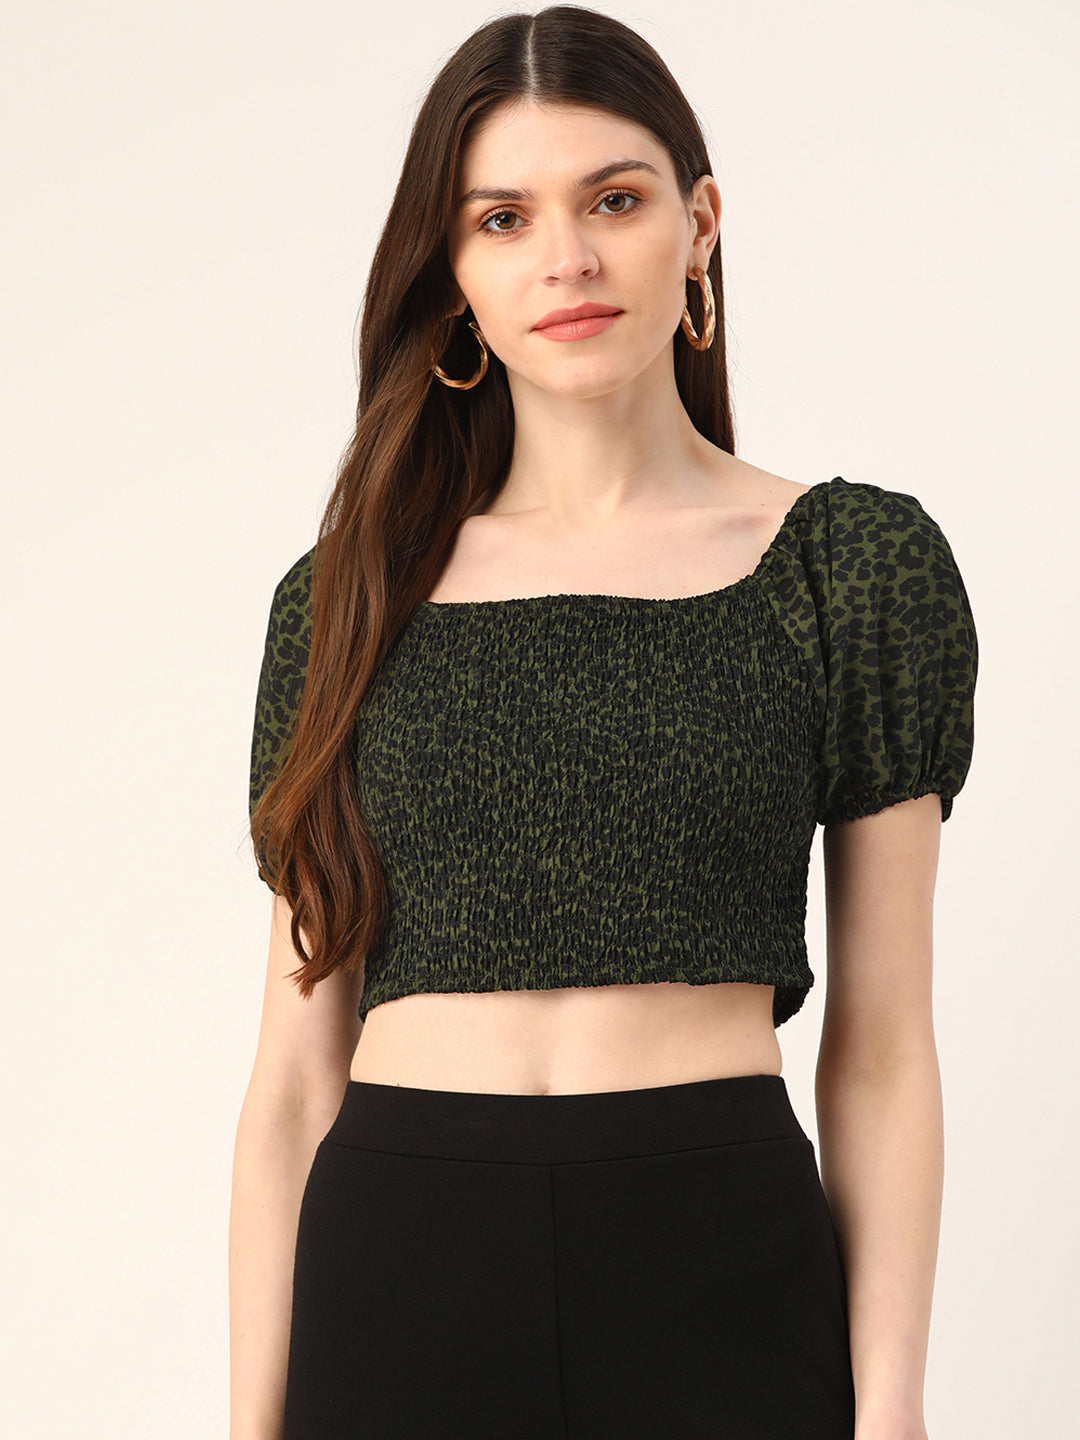 Green Bodycon Crop Top